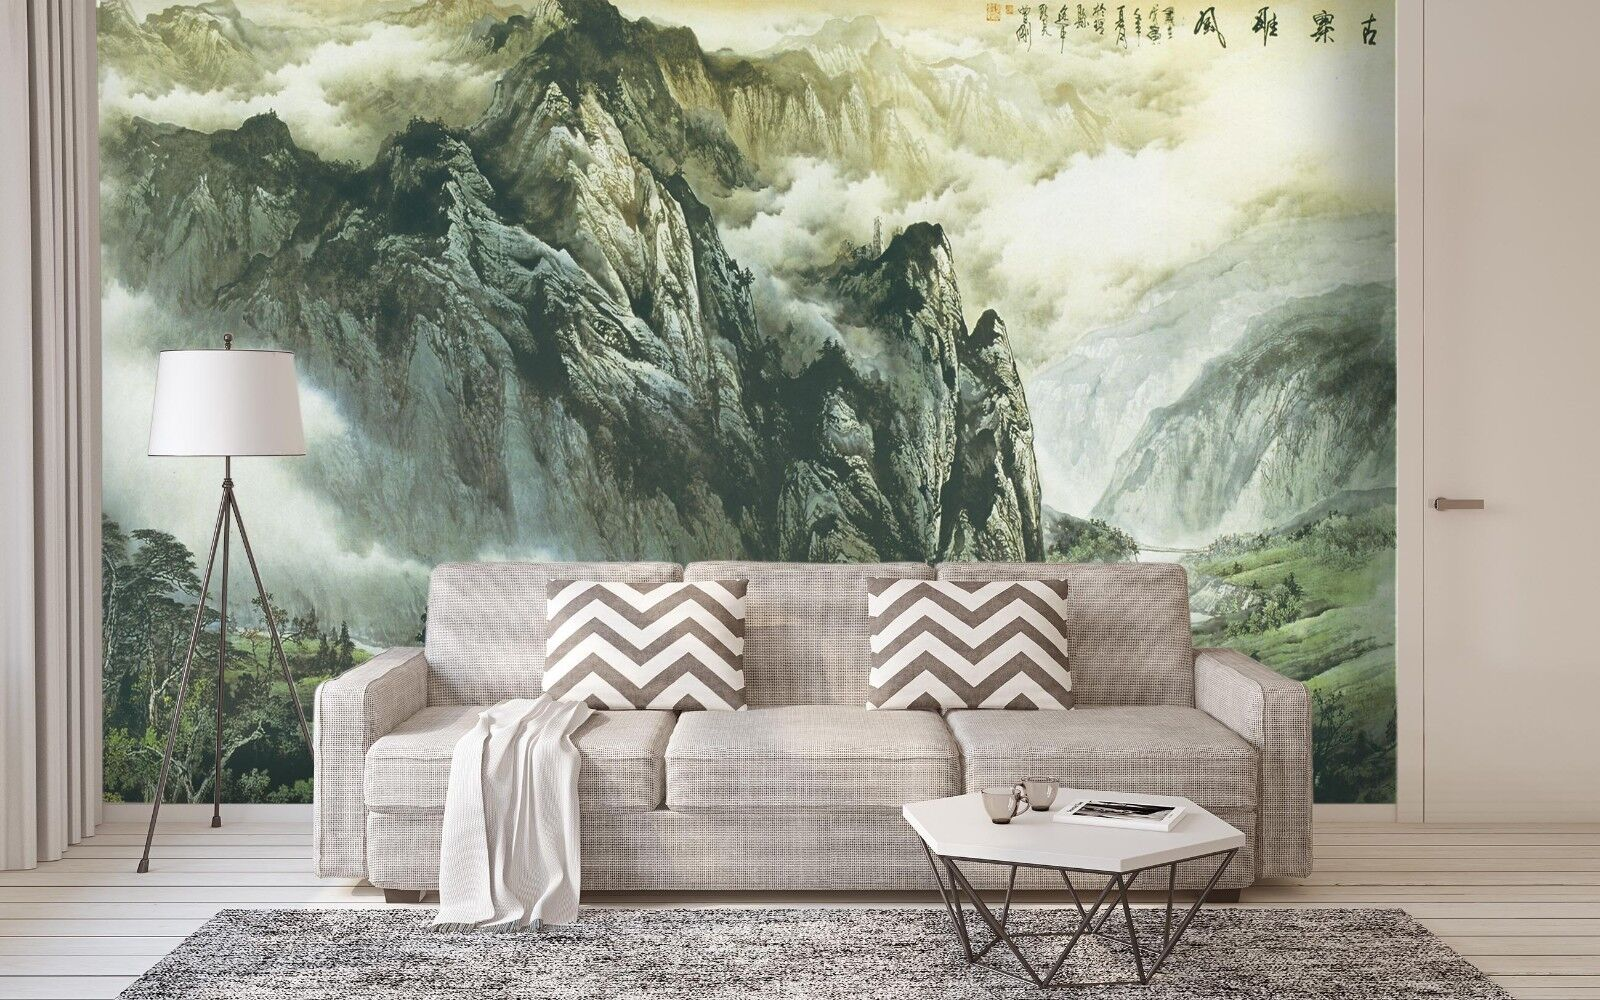 3D Majestic Mountain View 52 Wall Paper Wall Print Decal Wall Deco Indoor Murals